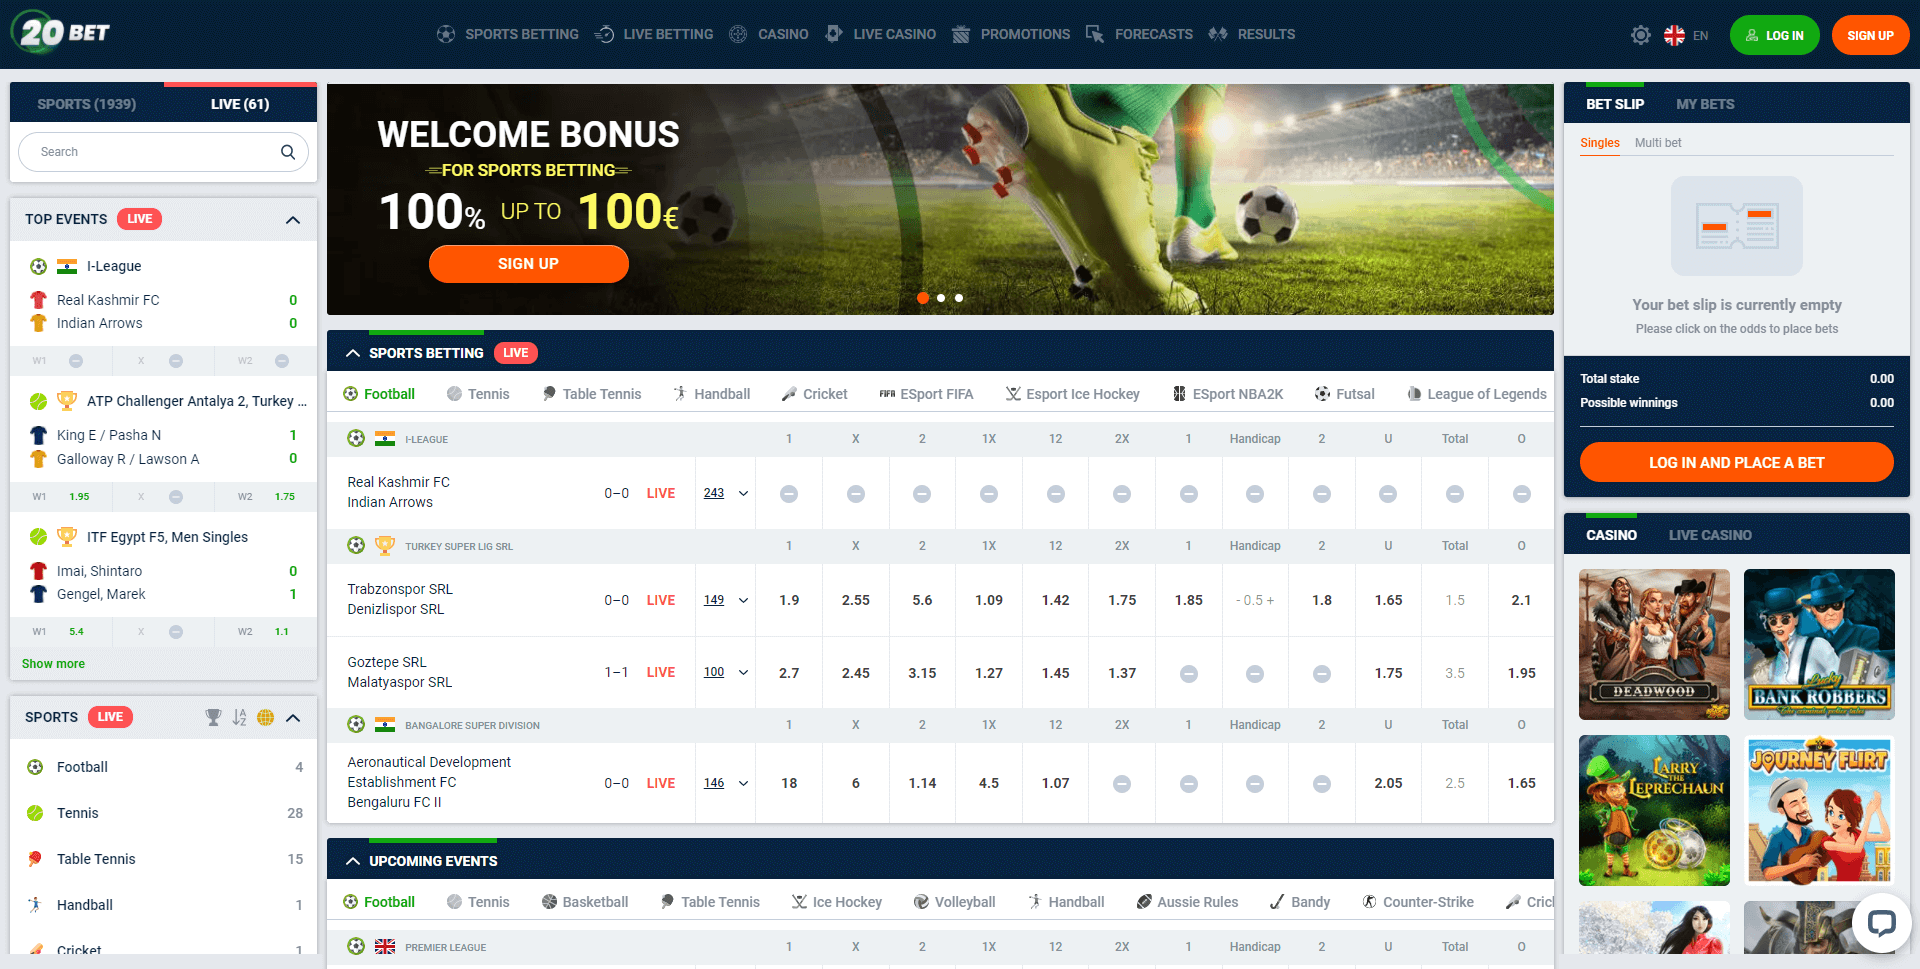 20bet Sportsbook Review